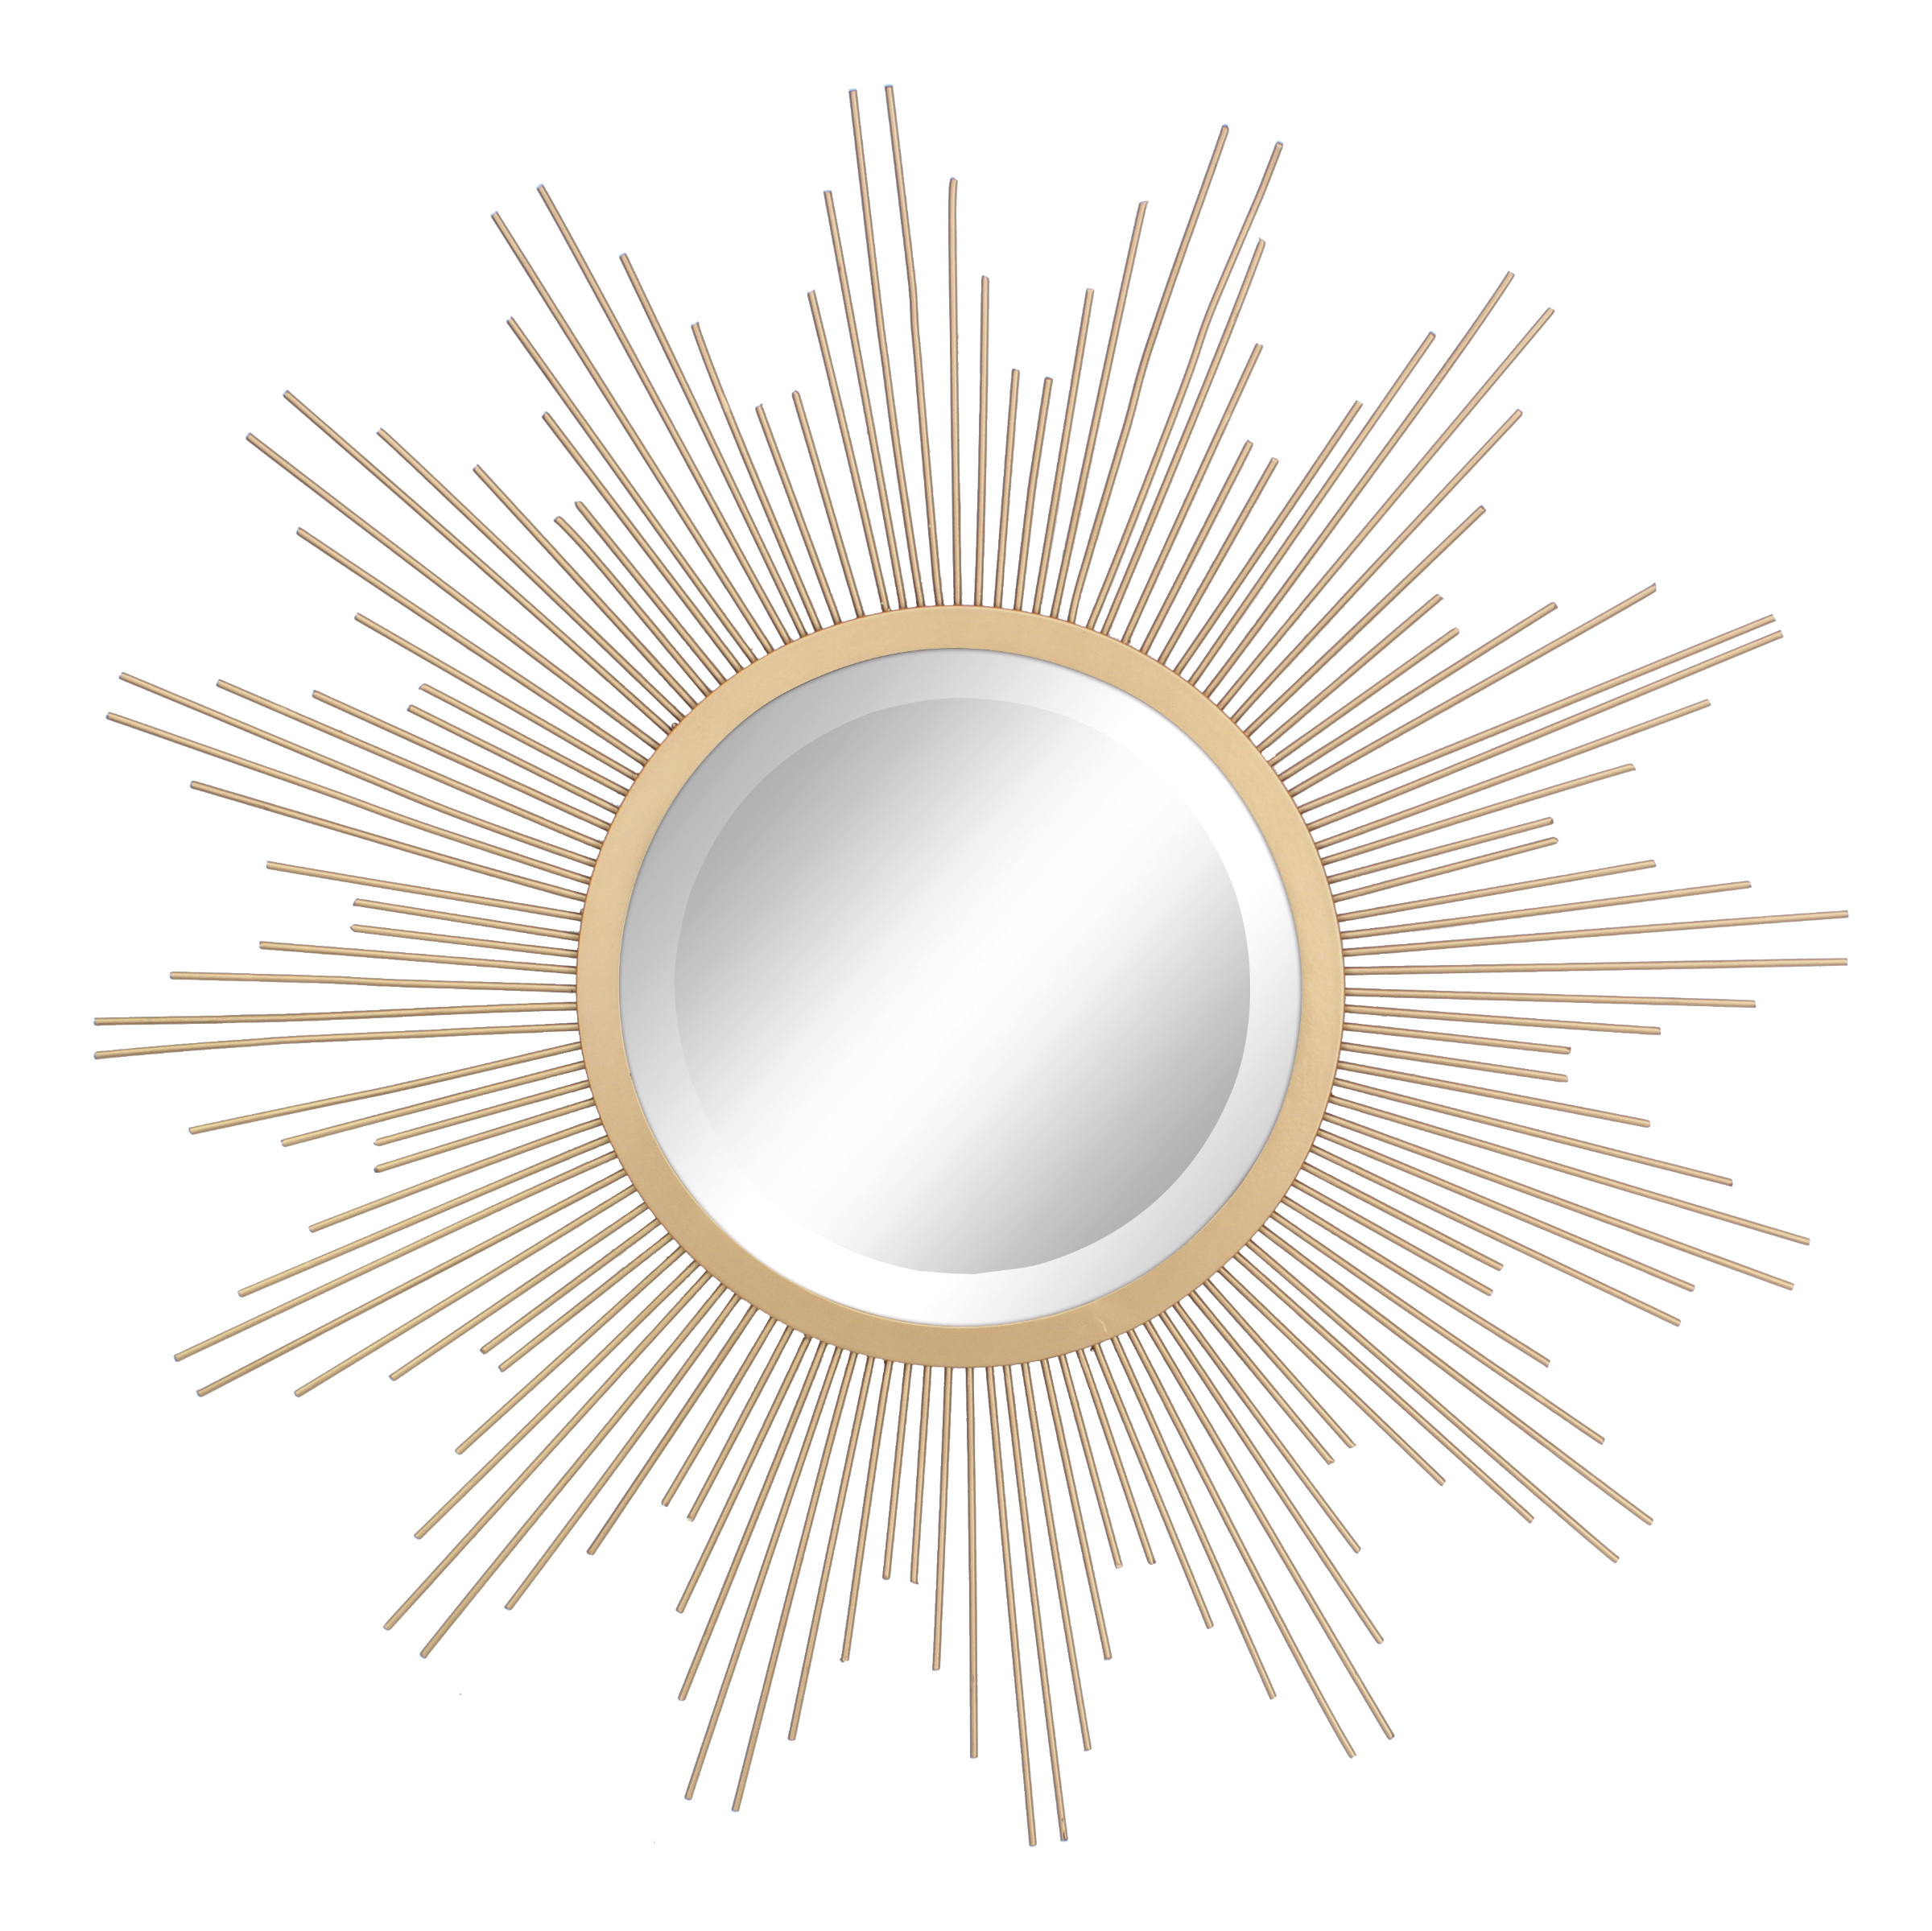 "Stonebriar Round Decorative Antique Gold 24"" Metal Starburst Hanging Mirror for Wall with Attached Mounting Brackets"